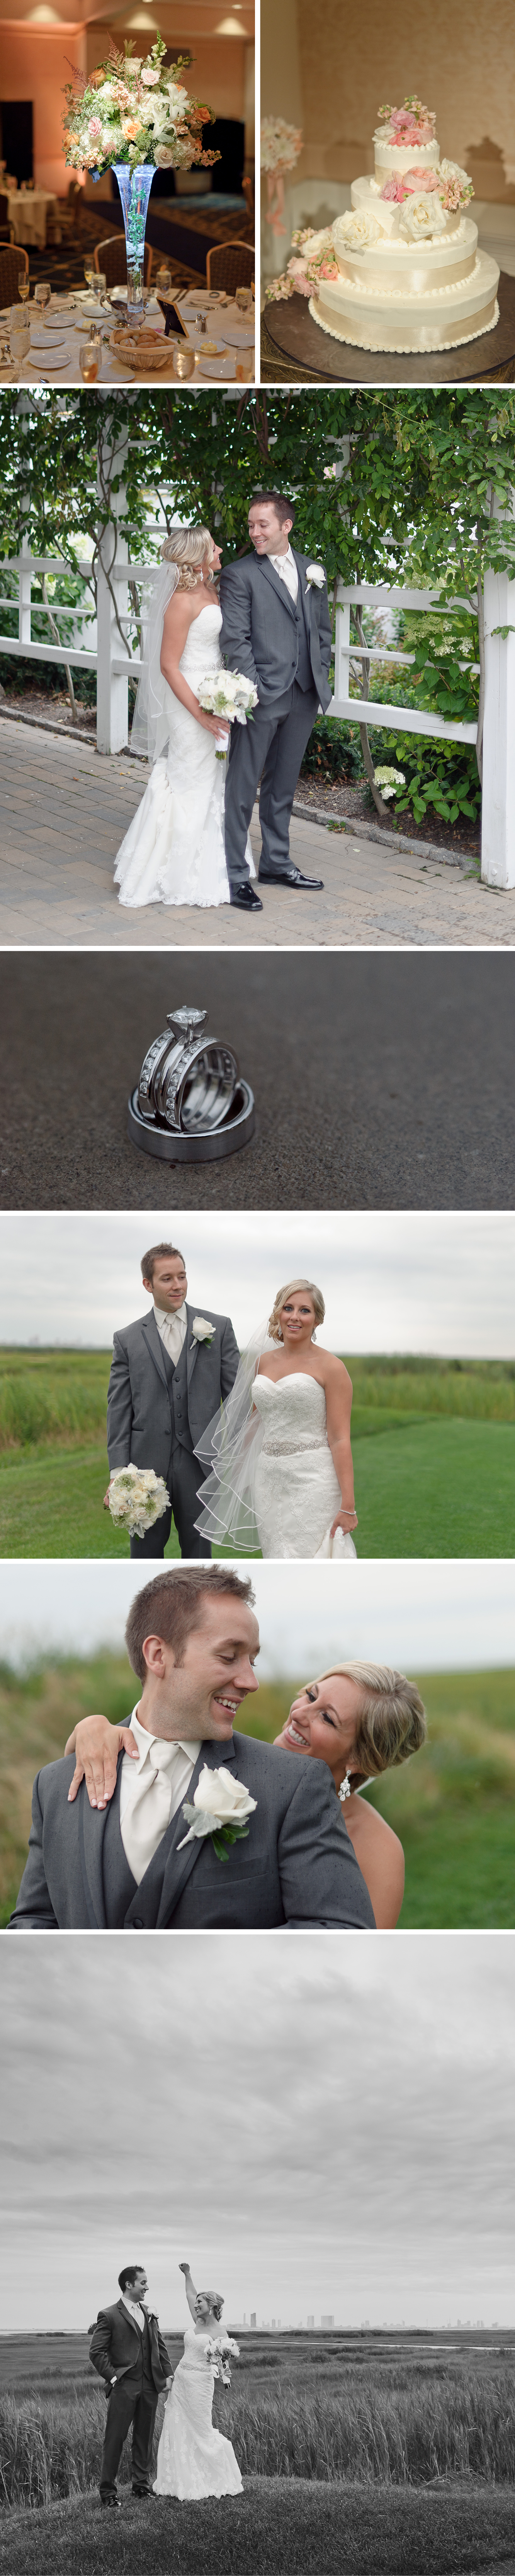 Stockton Seaview wedding photography by Jeremy Bischoff Photography